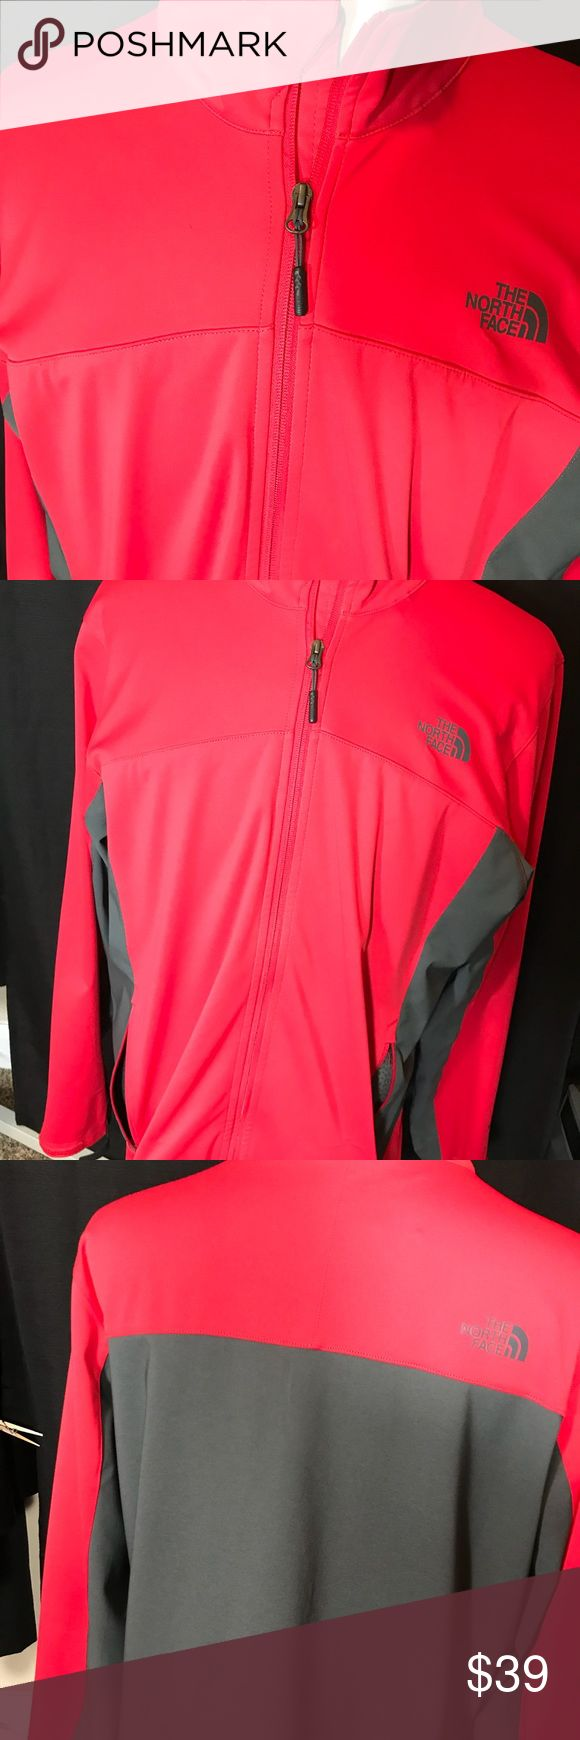 The North Face Mens Jacket Handsome Red and Grey jacket The North Face Jackets & Coats Performance Jackets